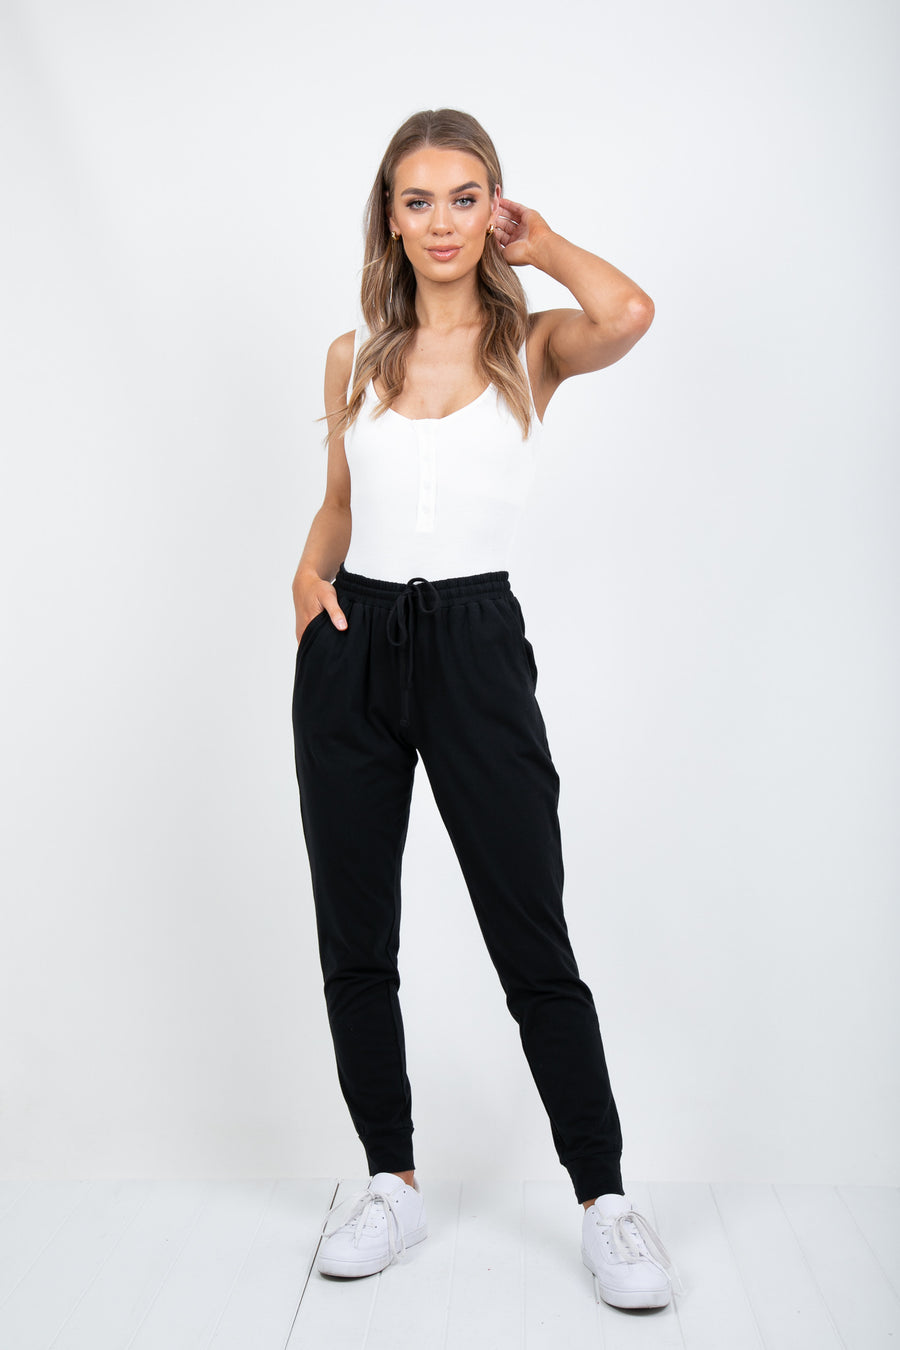 'BETTY BASICS'- HEIDI PANT - BLACK